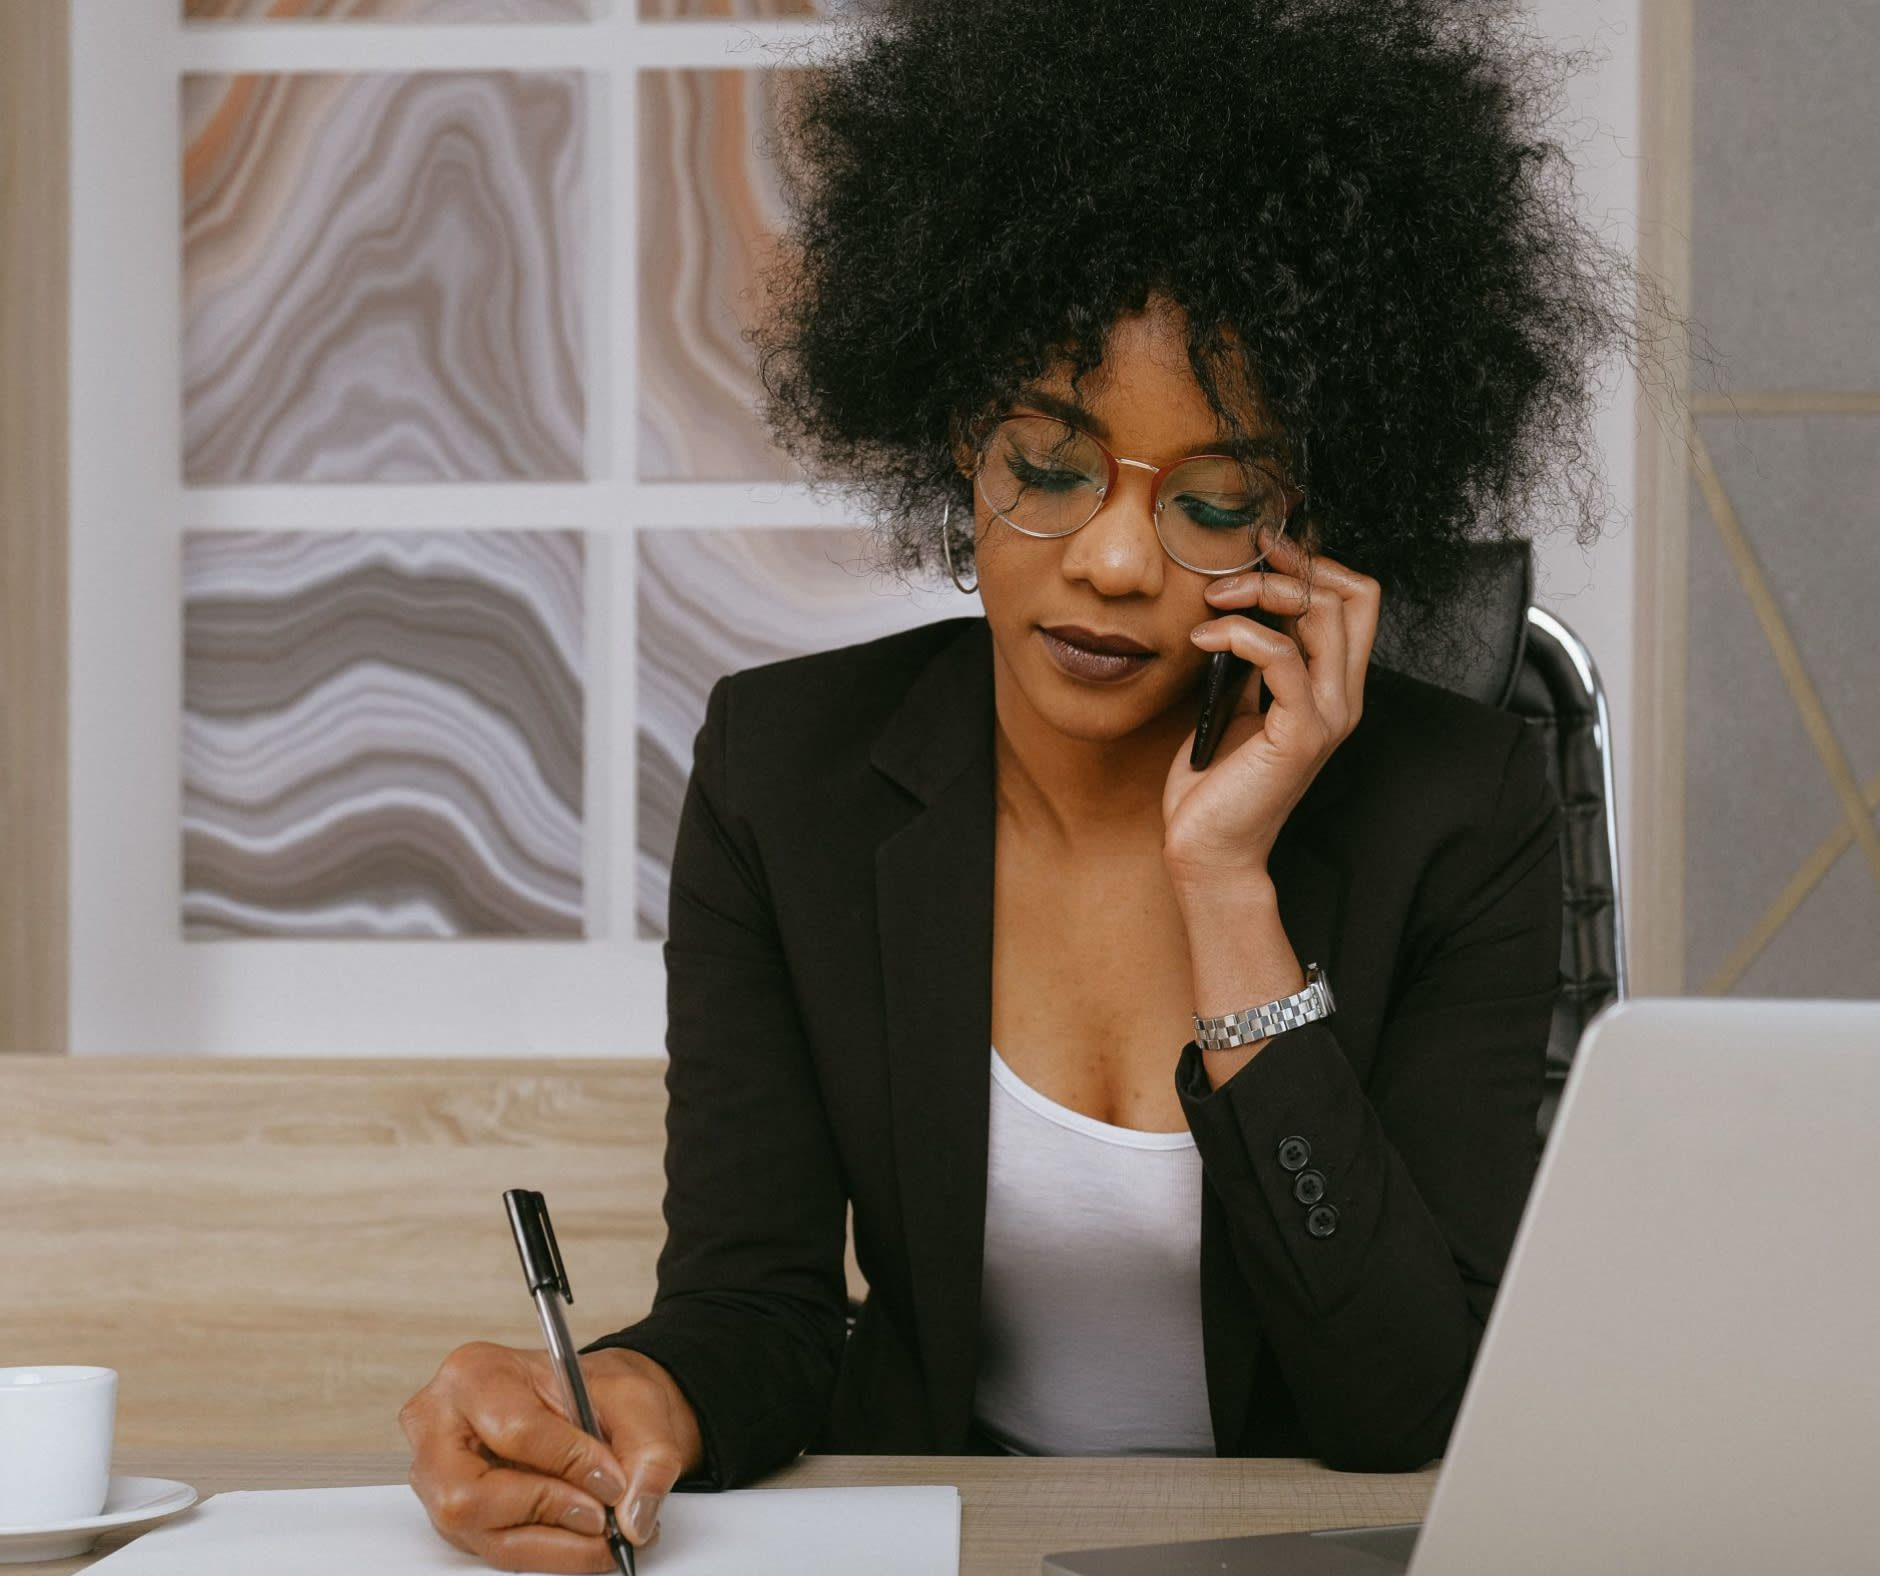 recession-proof your speaking business - check in with clients